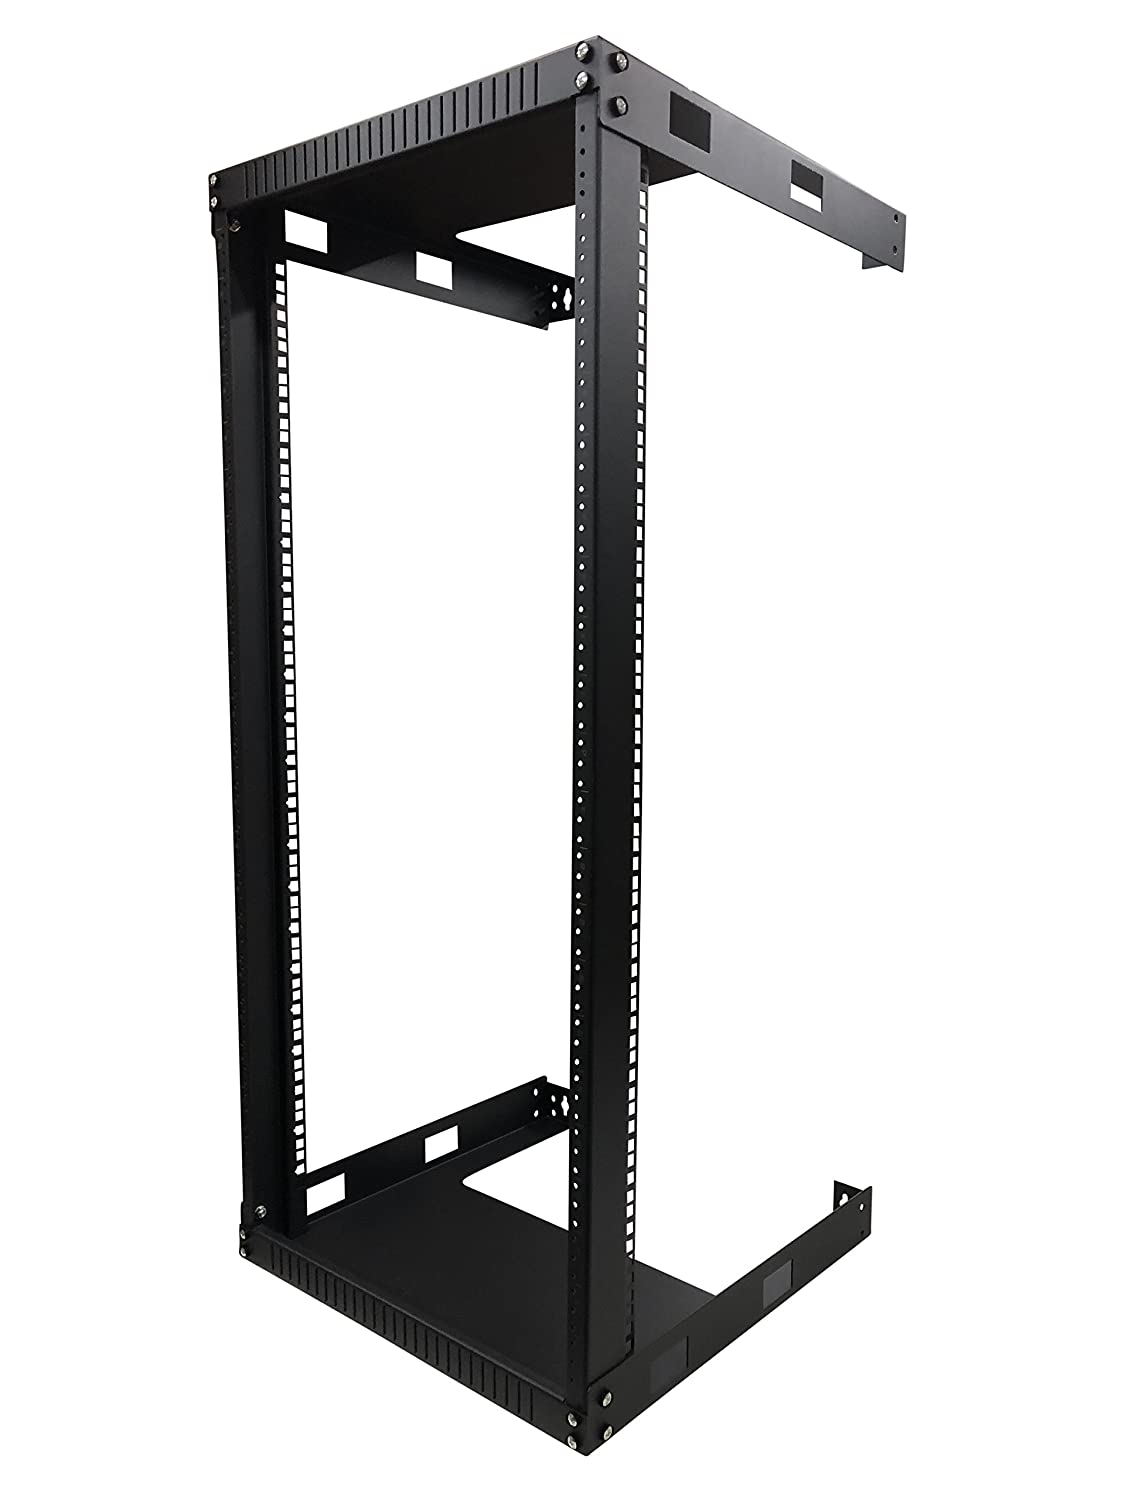 Kenuco 4U Wall Mount Open Frame Steel Network Equipment Rack 17.75 Inch Deep RACK-LNWORA-4U